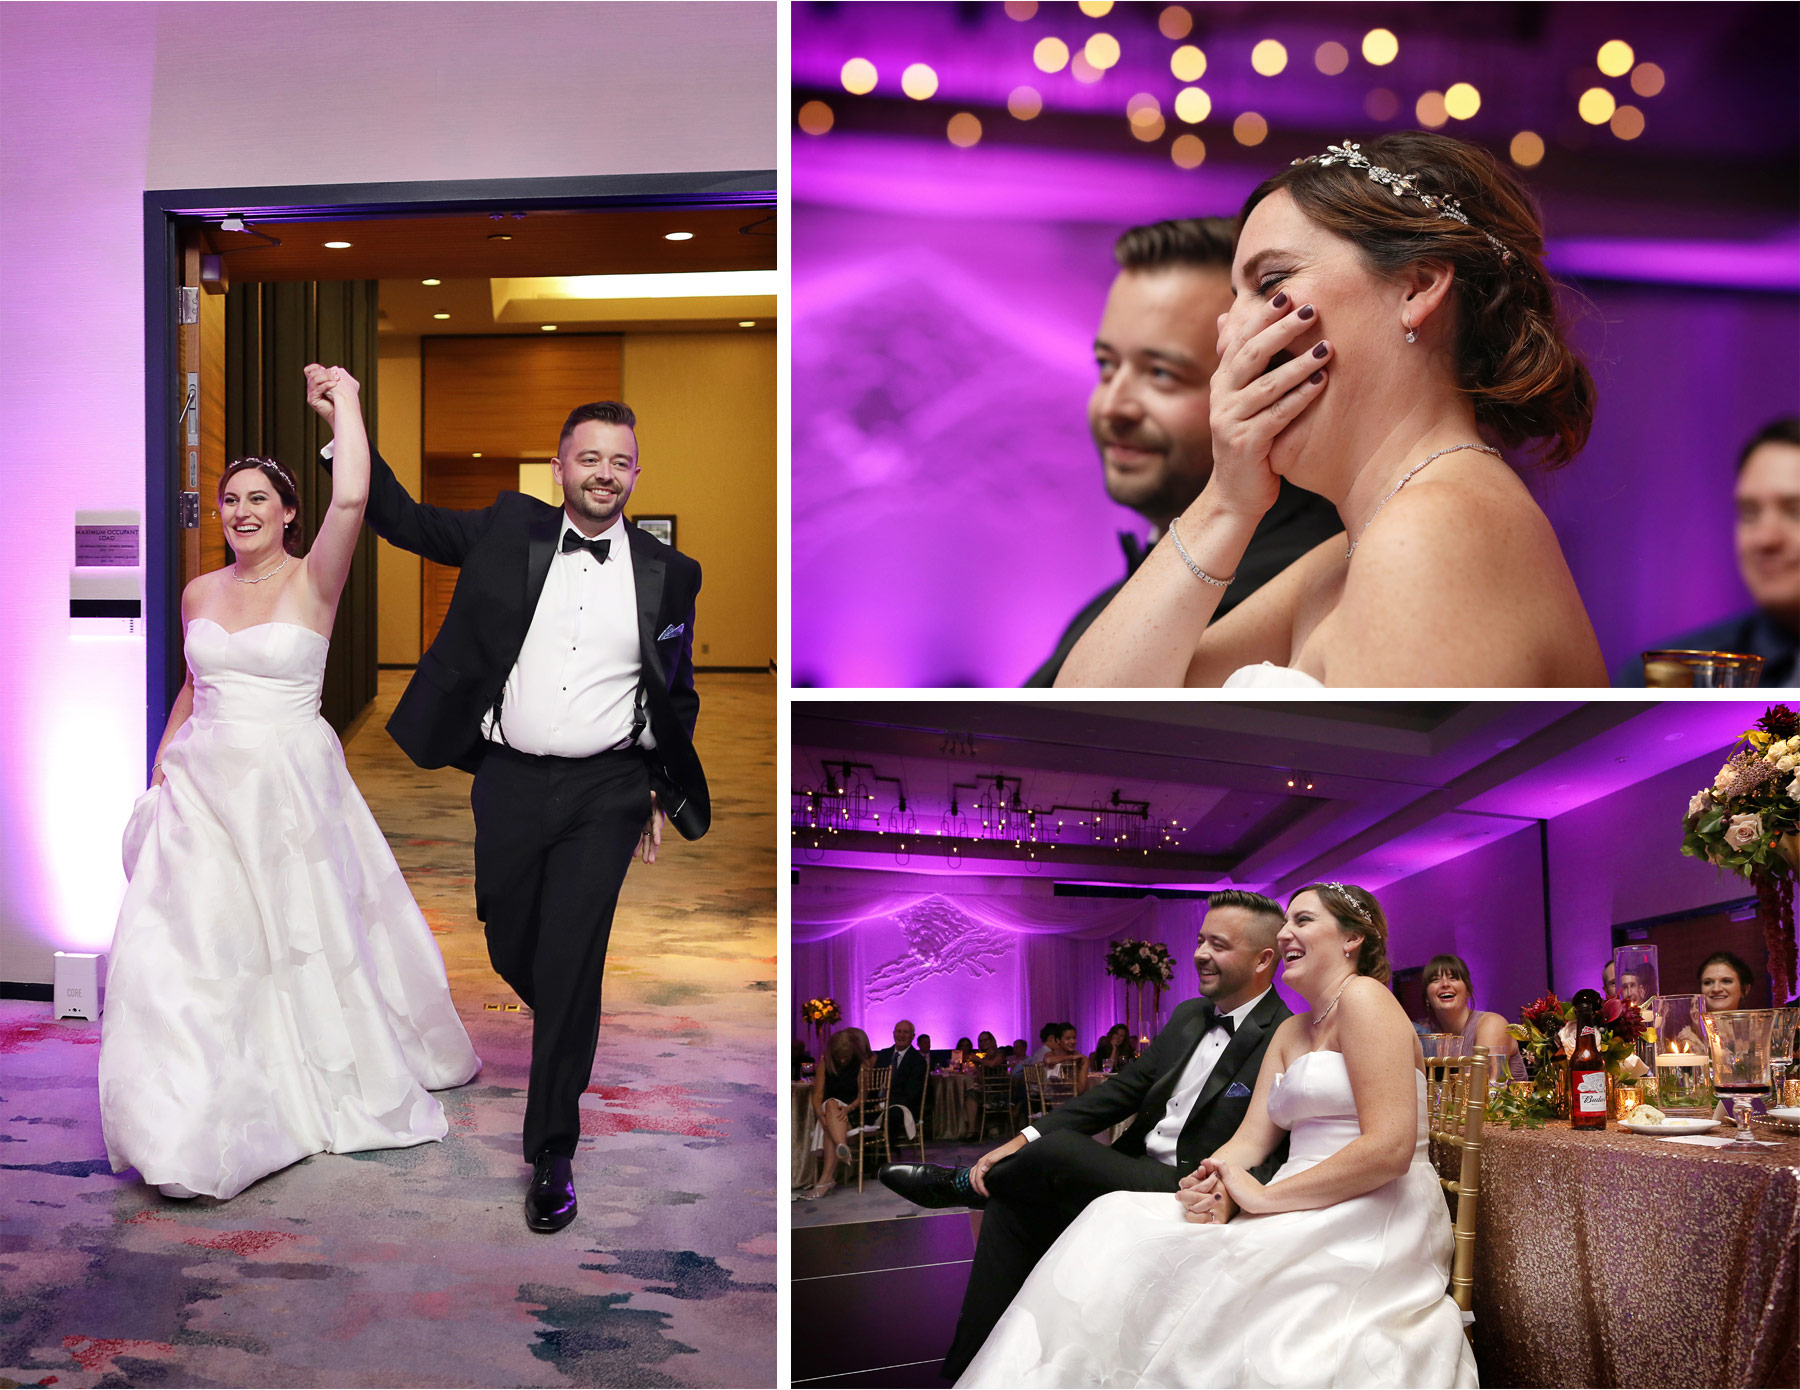 18-Minneapolis-Minnesota-Wedding-Photography-by-Vick-Photography-Loews-Hotel-Reception-Pink-Lighting-Caitlin-and-Alec.jpg